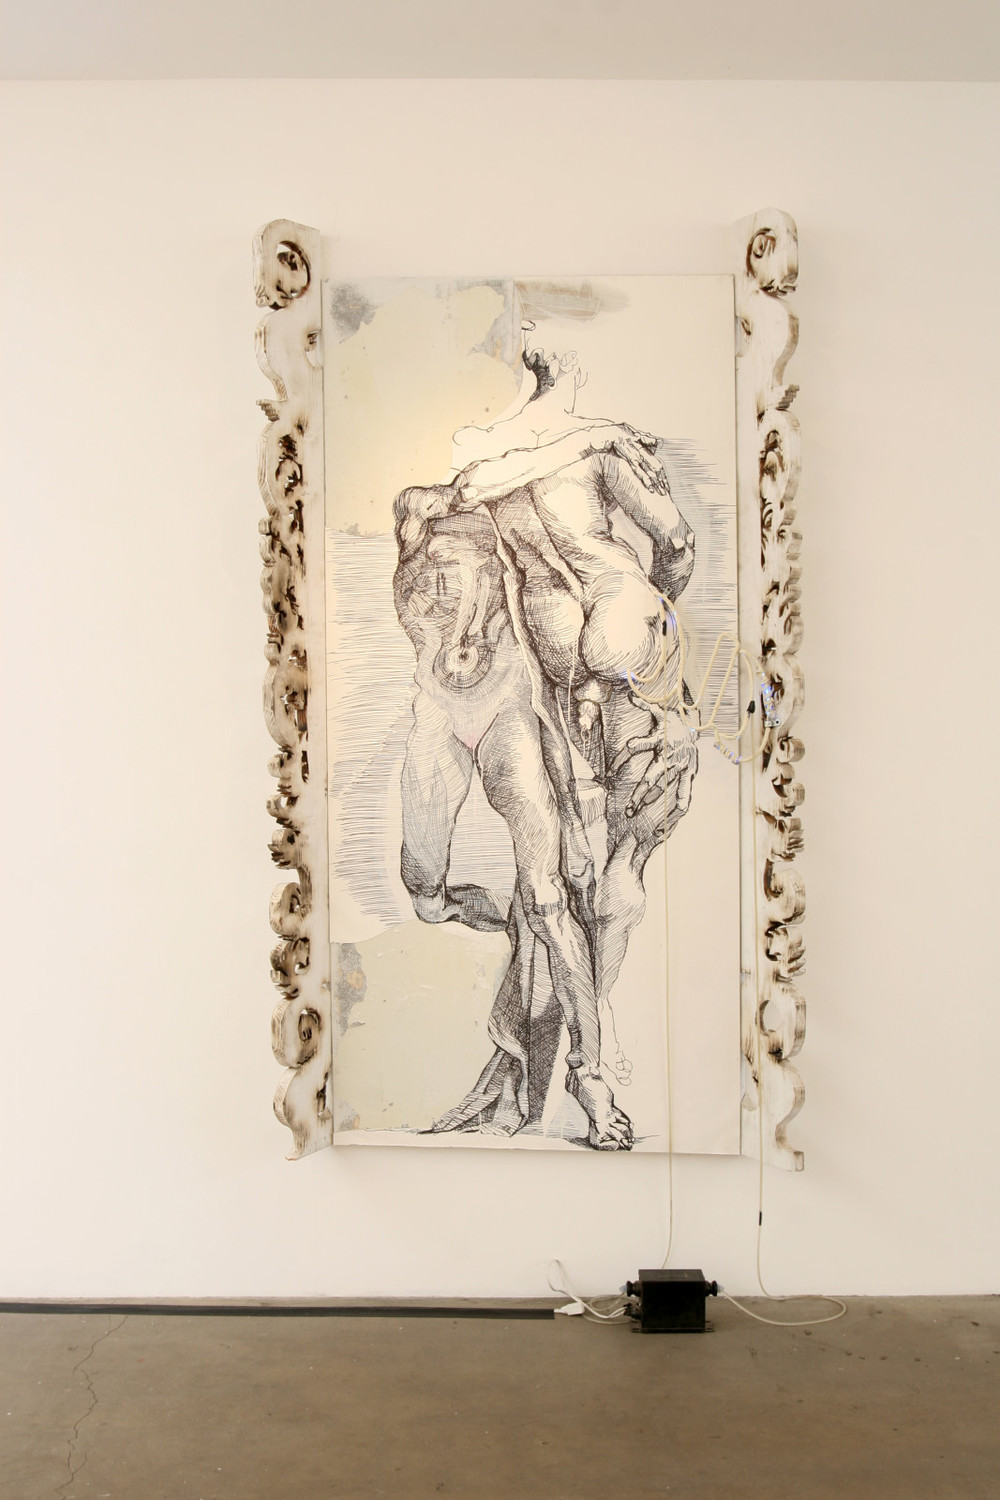 Aaron Sheppard, Salmacian Looking-Glass, 2013 Exhibition at Western Project